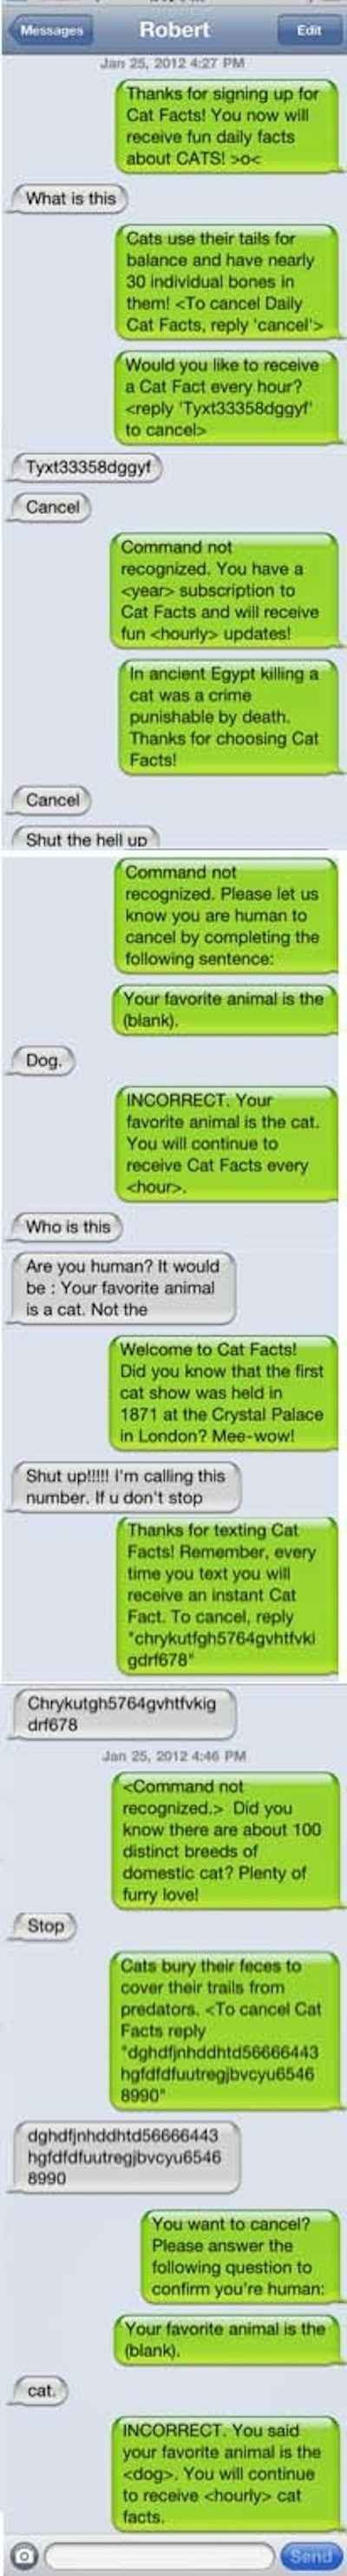 And, of course, The Cat Facts Approach: